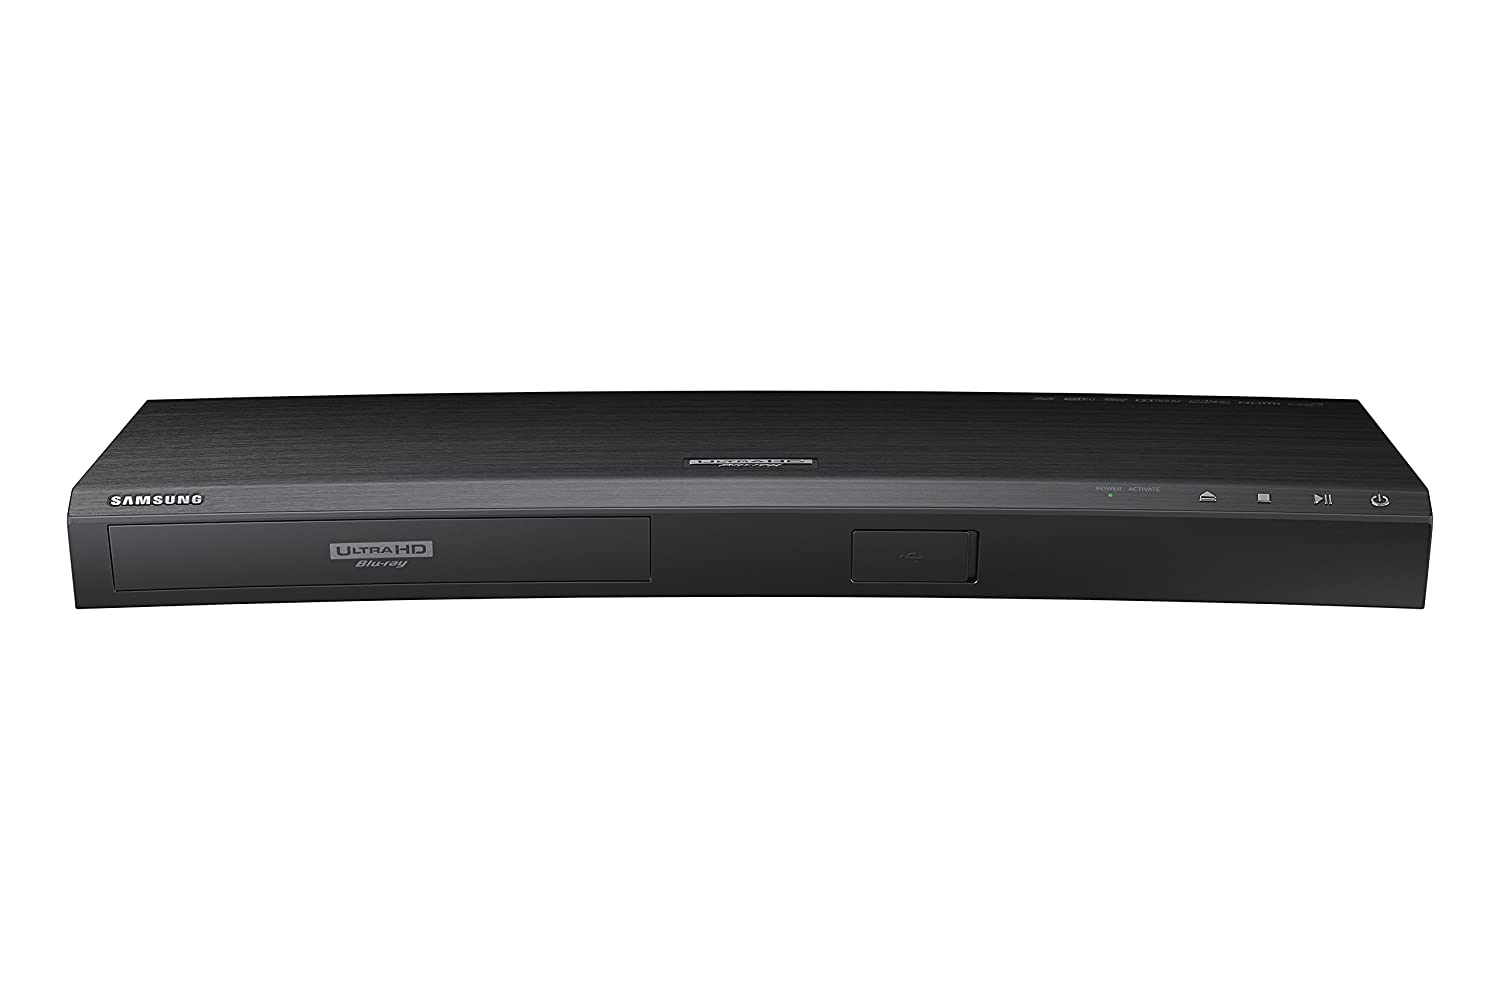 Samsung Electronics UBD-K8500 3D Wi-Fi 4K Ultra HD Blu-ray Player (2016 Model)